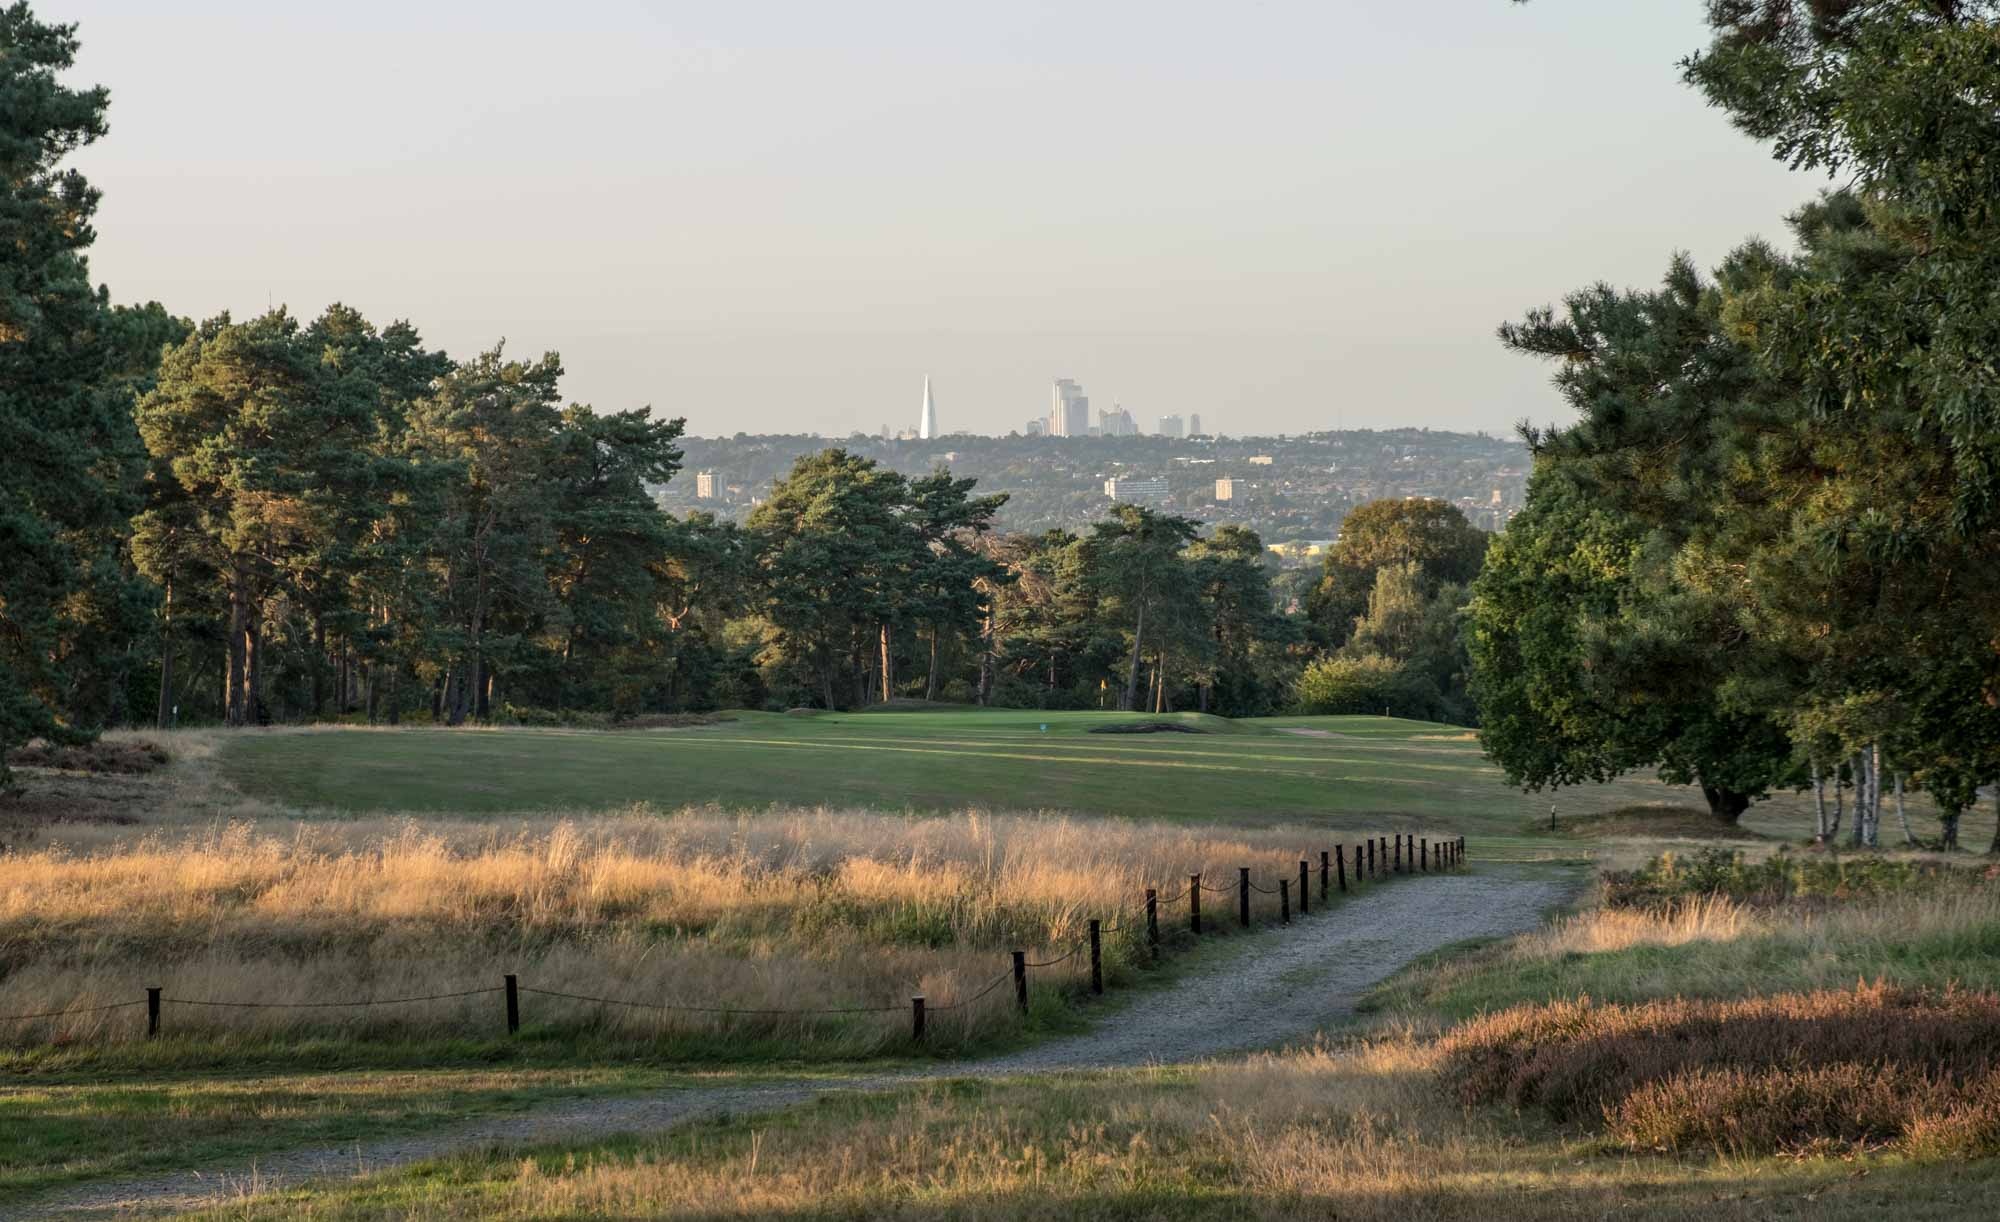 A photo from the fourteenth tee overlooking London at The Addington Golf Club by JF Abercromby.